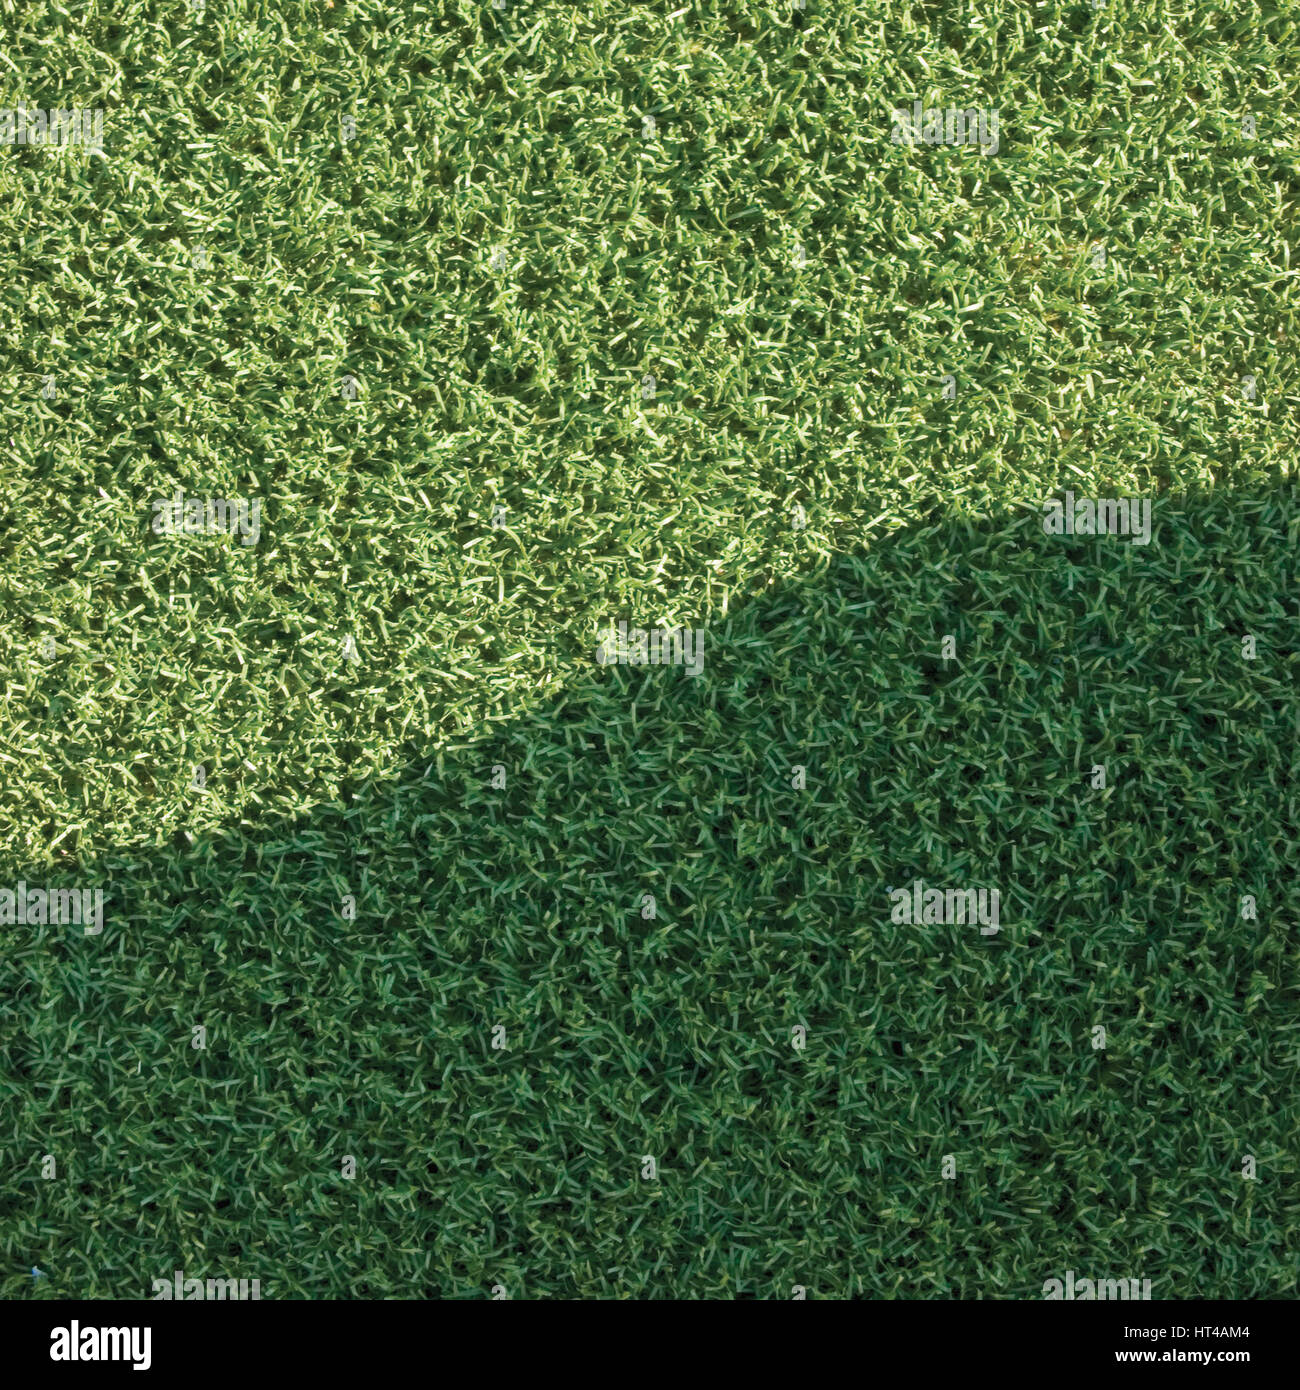 Artificial grass fake turf synthetic lawn field macro closeup with gentle shaded shadow area, green sports texture Stock Photo